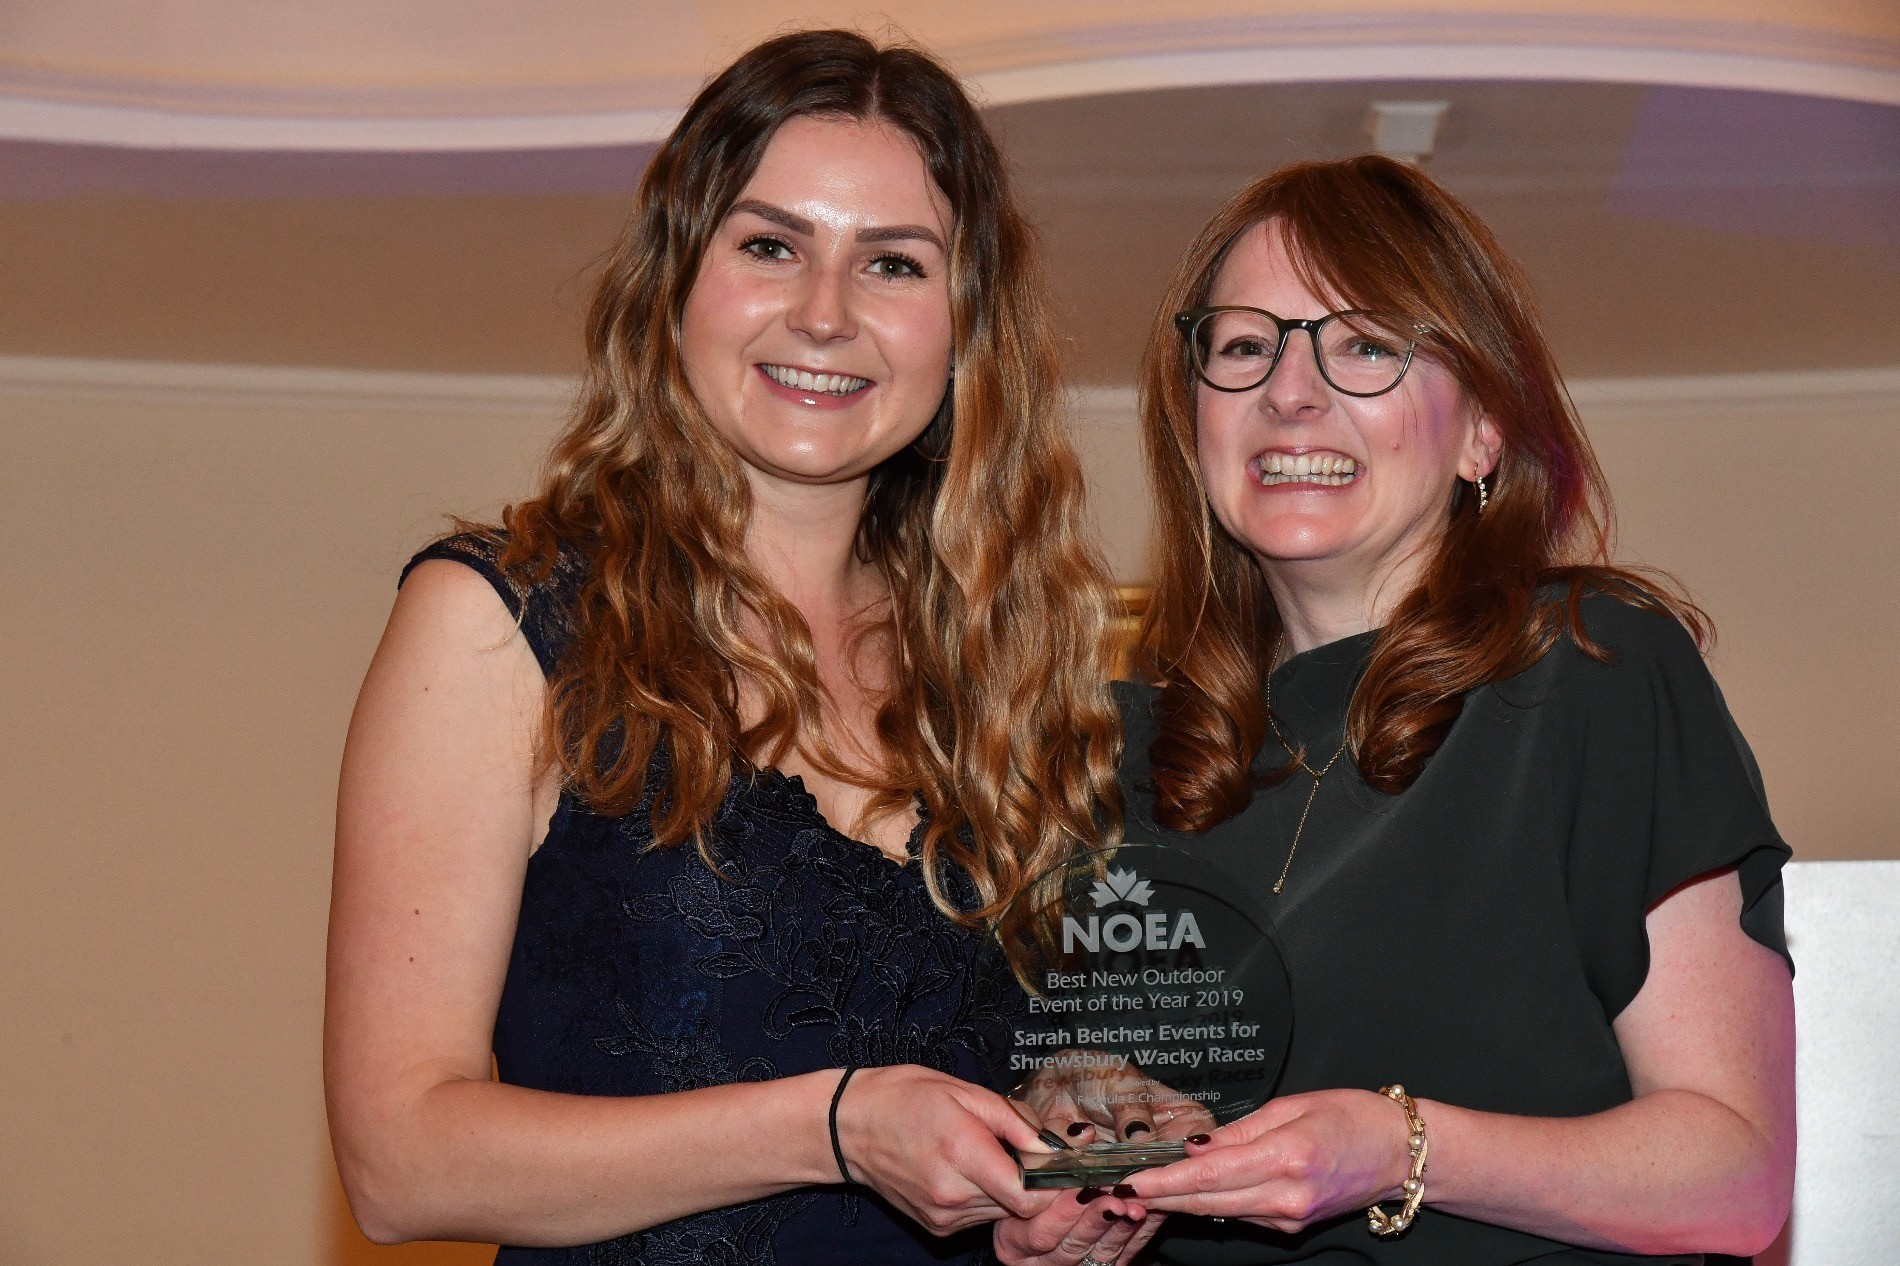 Shrewsbury Wacky Races Crowned Best New Event of the Year by NOEA